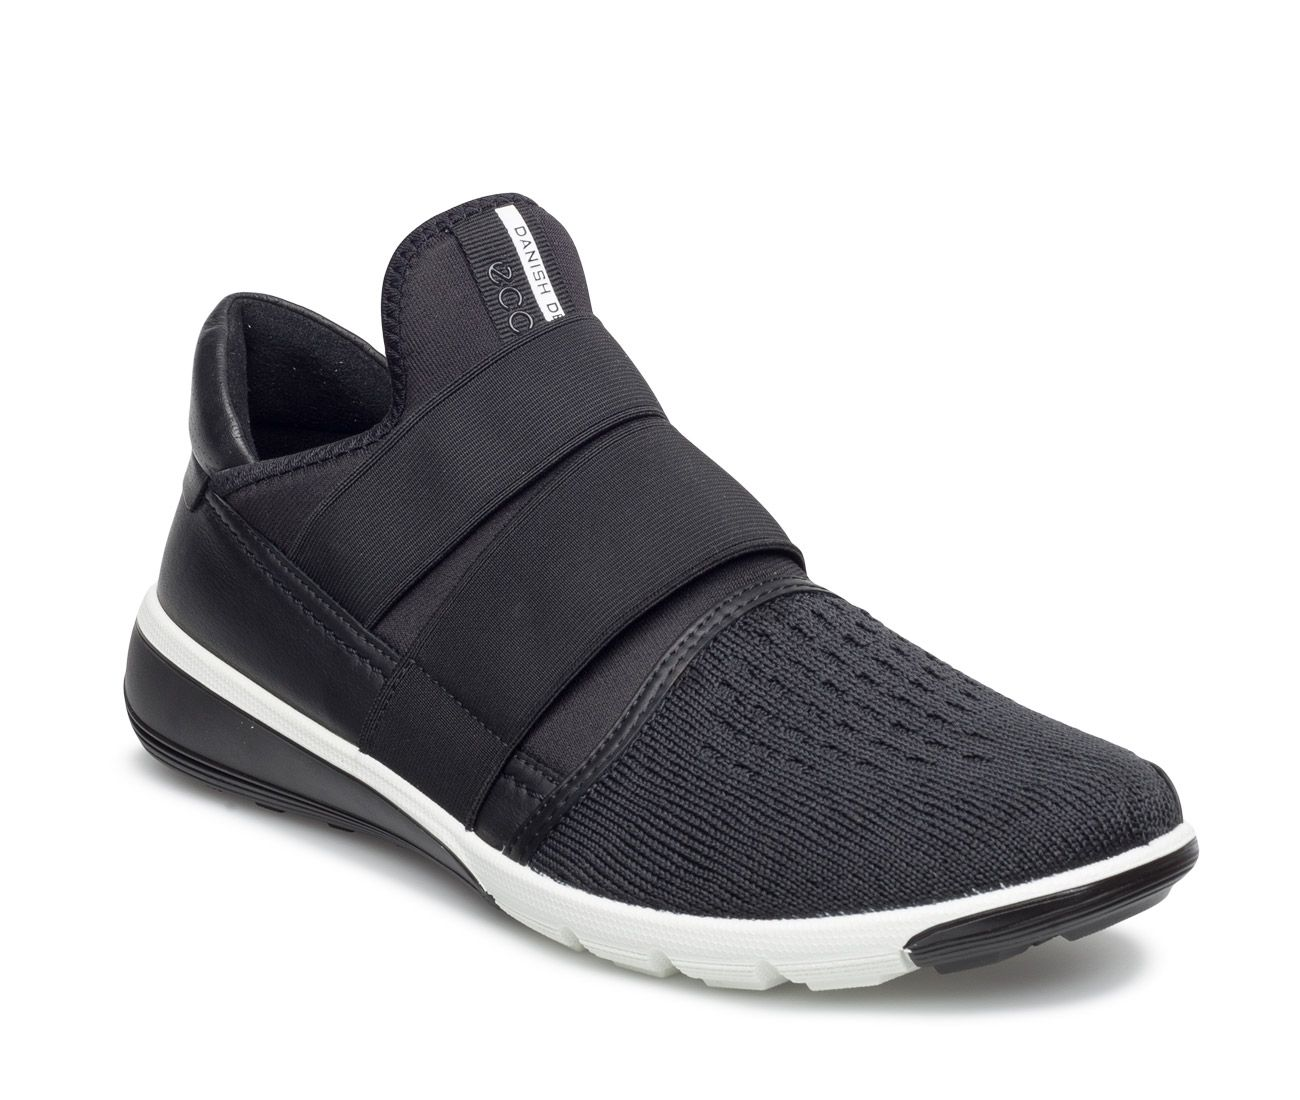 ECCO is a global leader in innovative comfort footwear for men, ladies and  kids. Founded in Denmark in